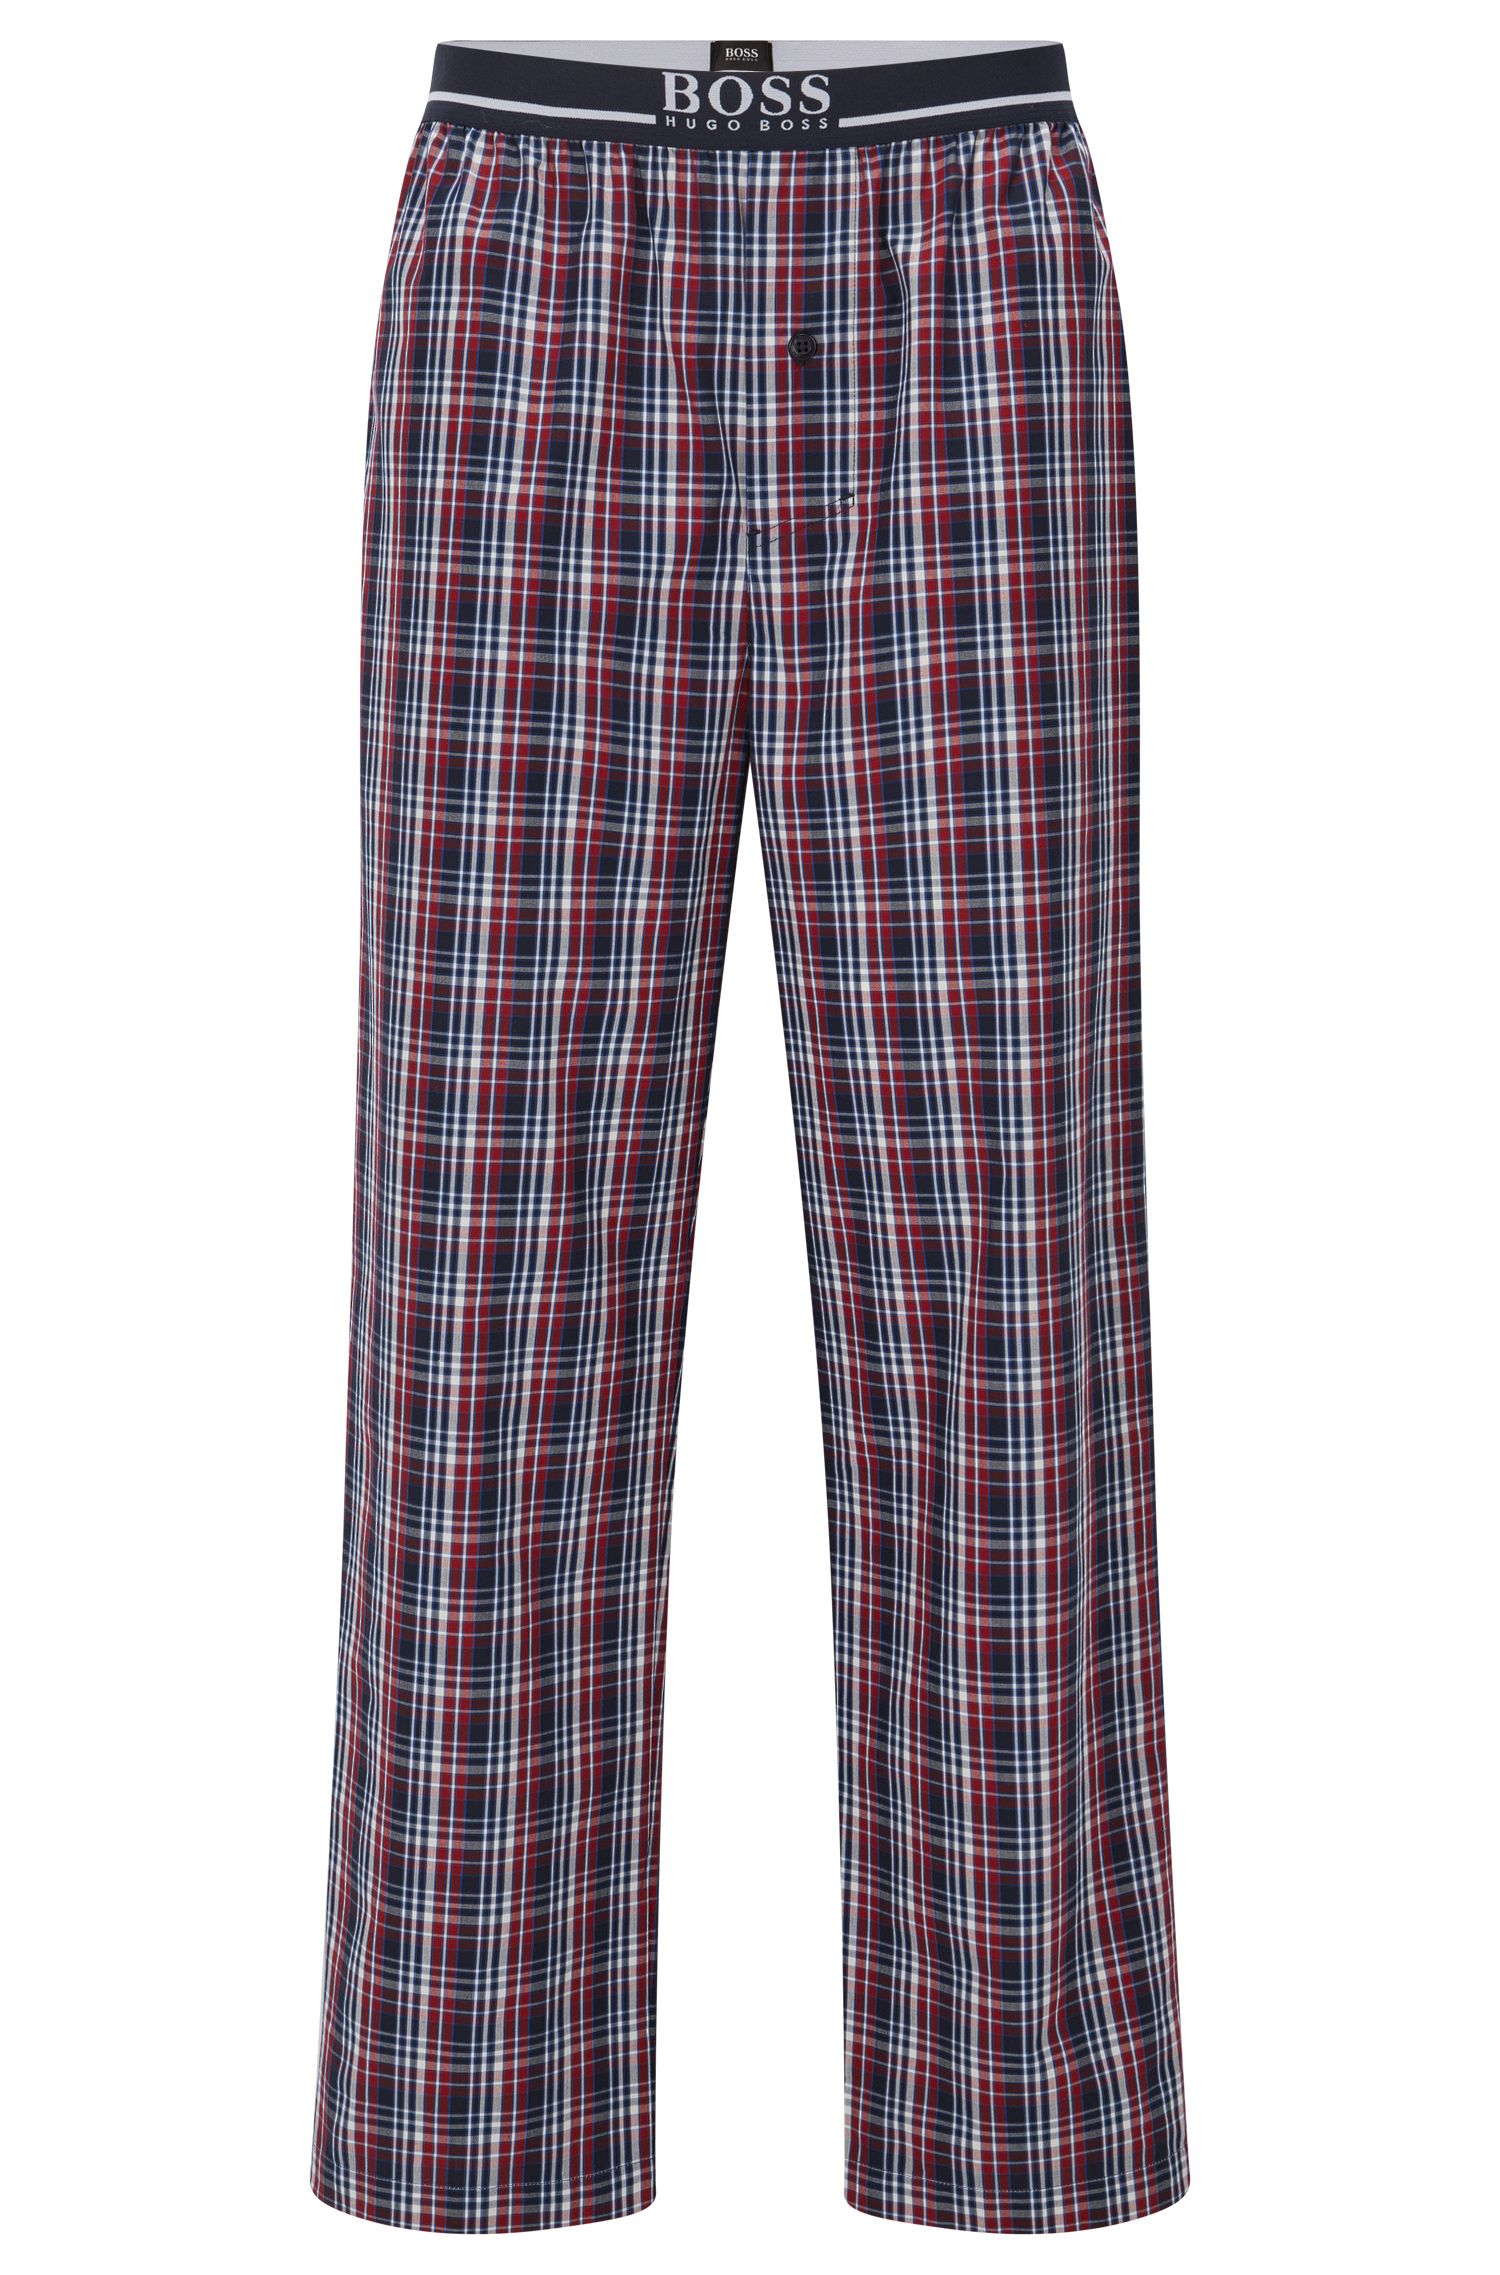 Pyjama bottoms in cotton poplin